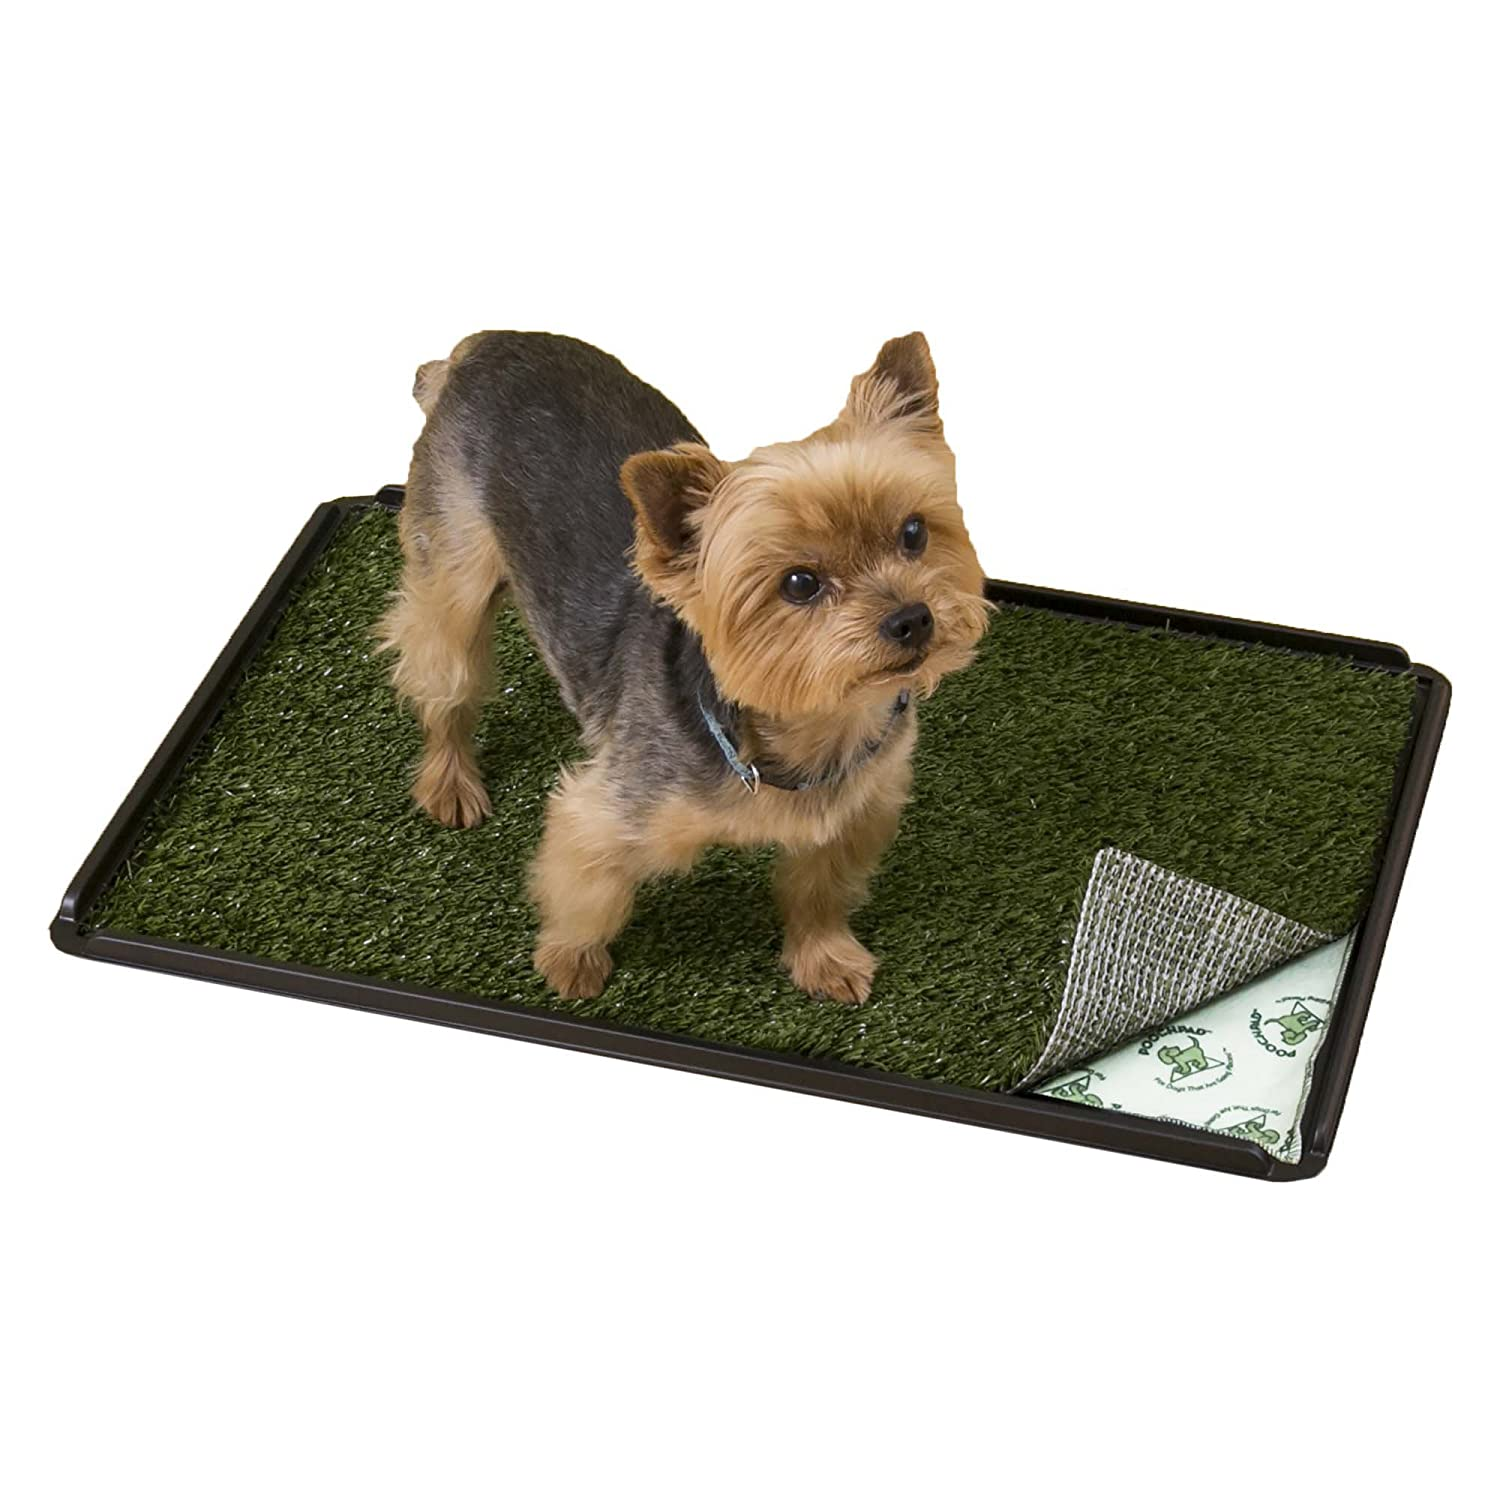 Amazon.com : Pooch Pads Indoor Turf Dog Potty Plus, For dogs up to ...